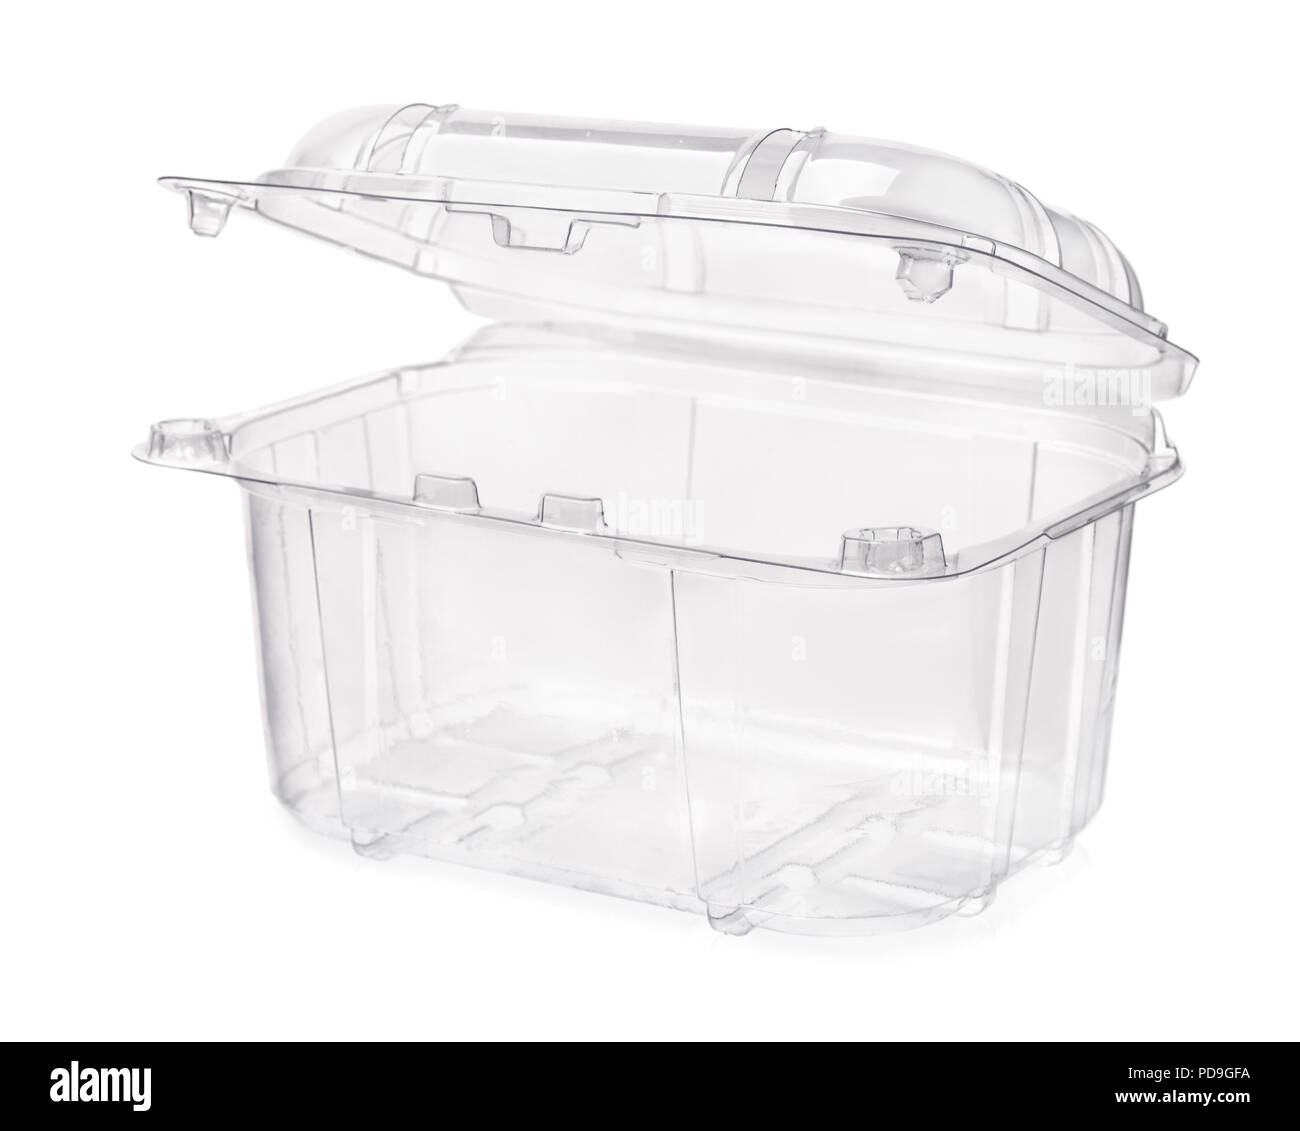 Empty transparent plastic food container isolated on white - Stock Image